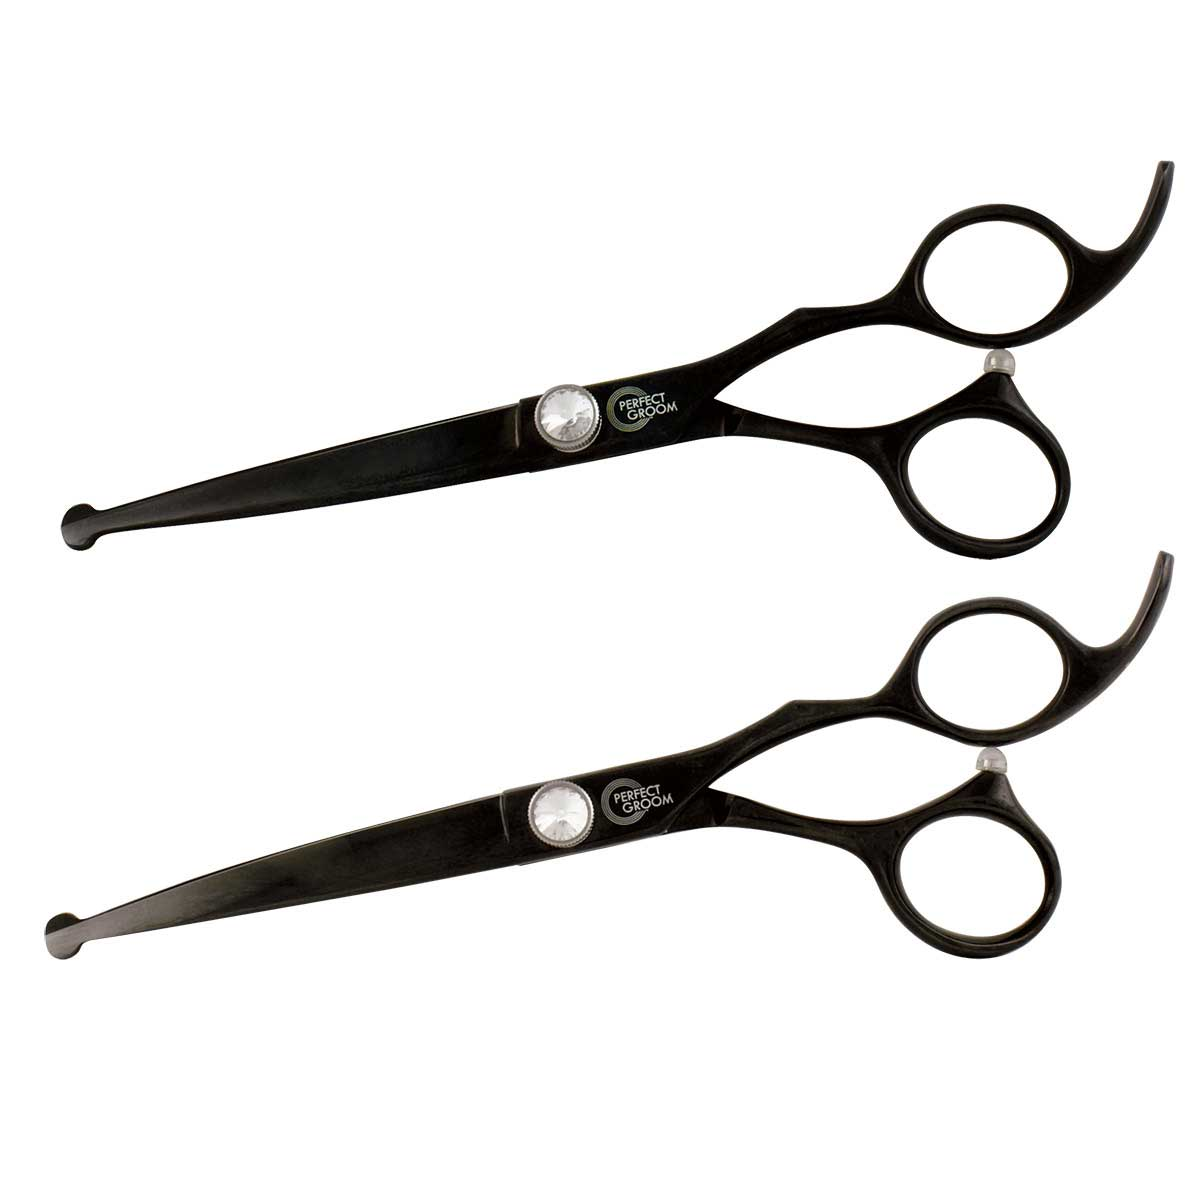 Perfect Groom 6.5 inch Ball Tip Shears - Curved/Straight Combo